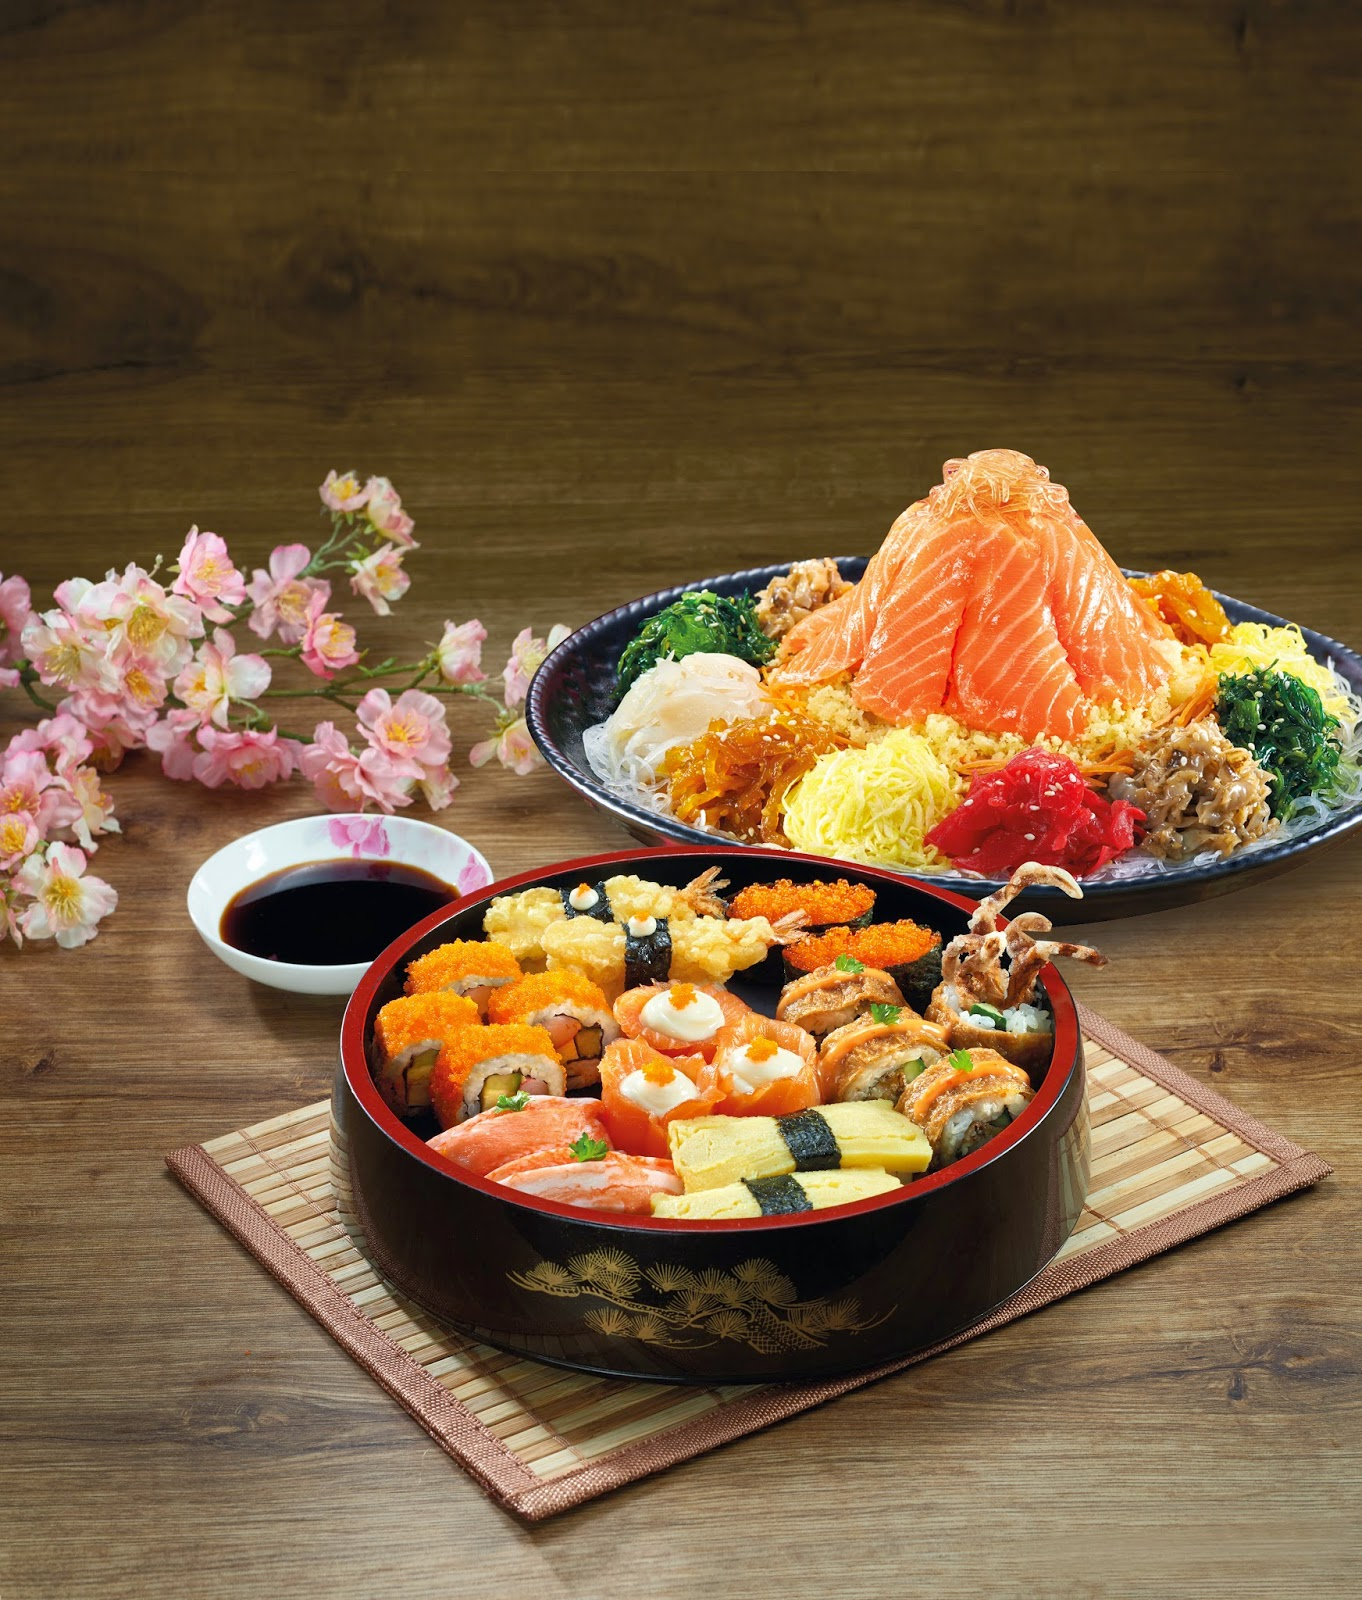 sakae sushi malaysia background information Sakae sushi johor bahru brings you exclusive sushi menu along with sashimi and different side dishes at the comfort of your home, order for a small group or organize an exclusive party, the different sushi set options listed on sakae sushi menu.